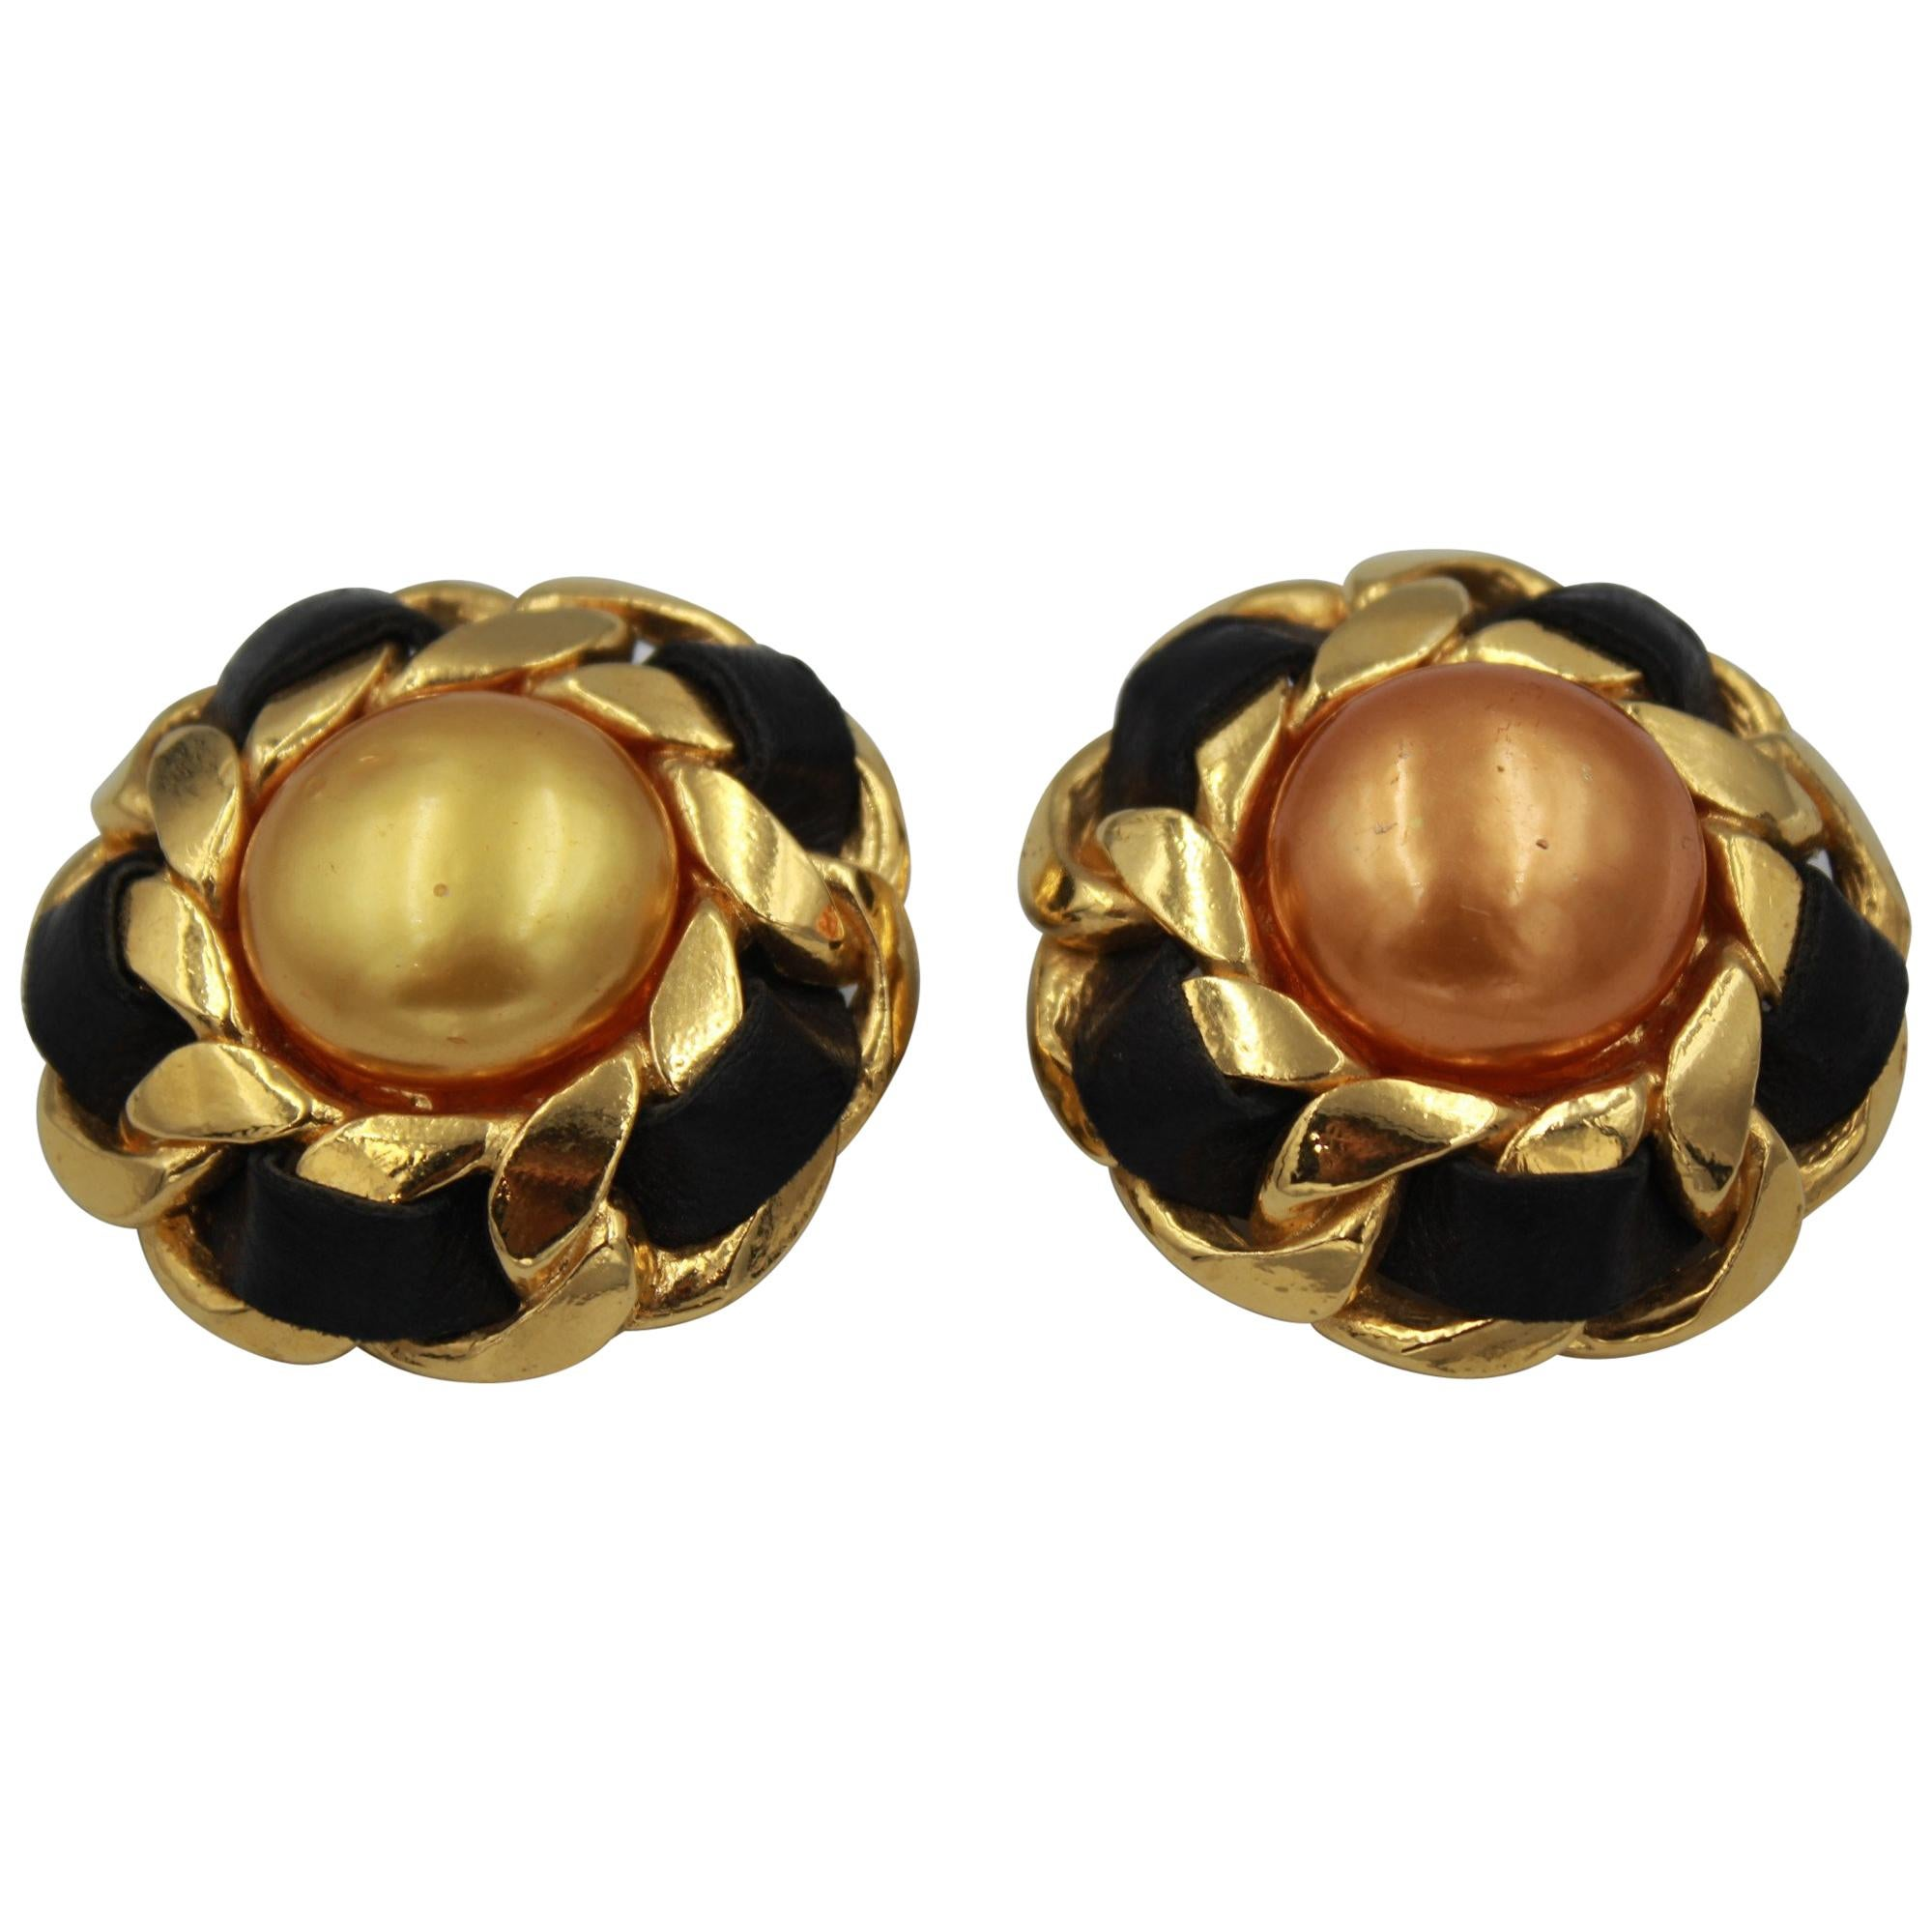 46395a606 Vintage Chanel Clip-on Earrings - 430 For Sale at 1stdibs